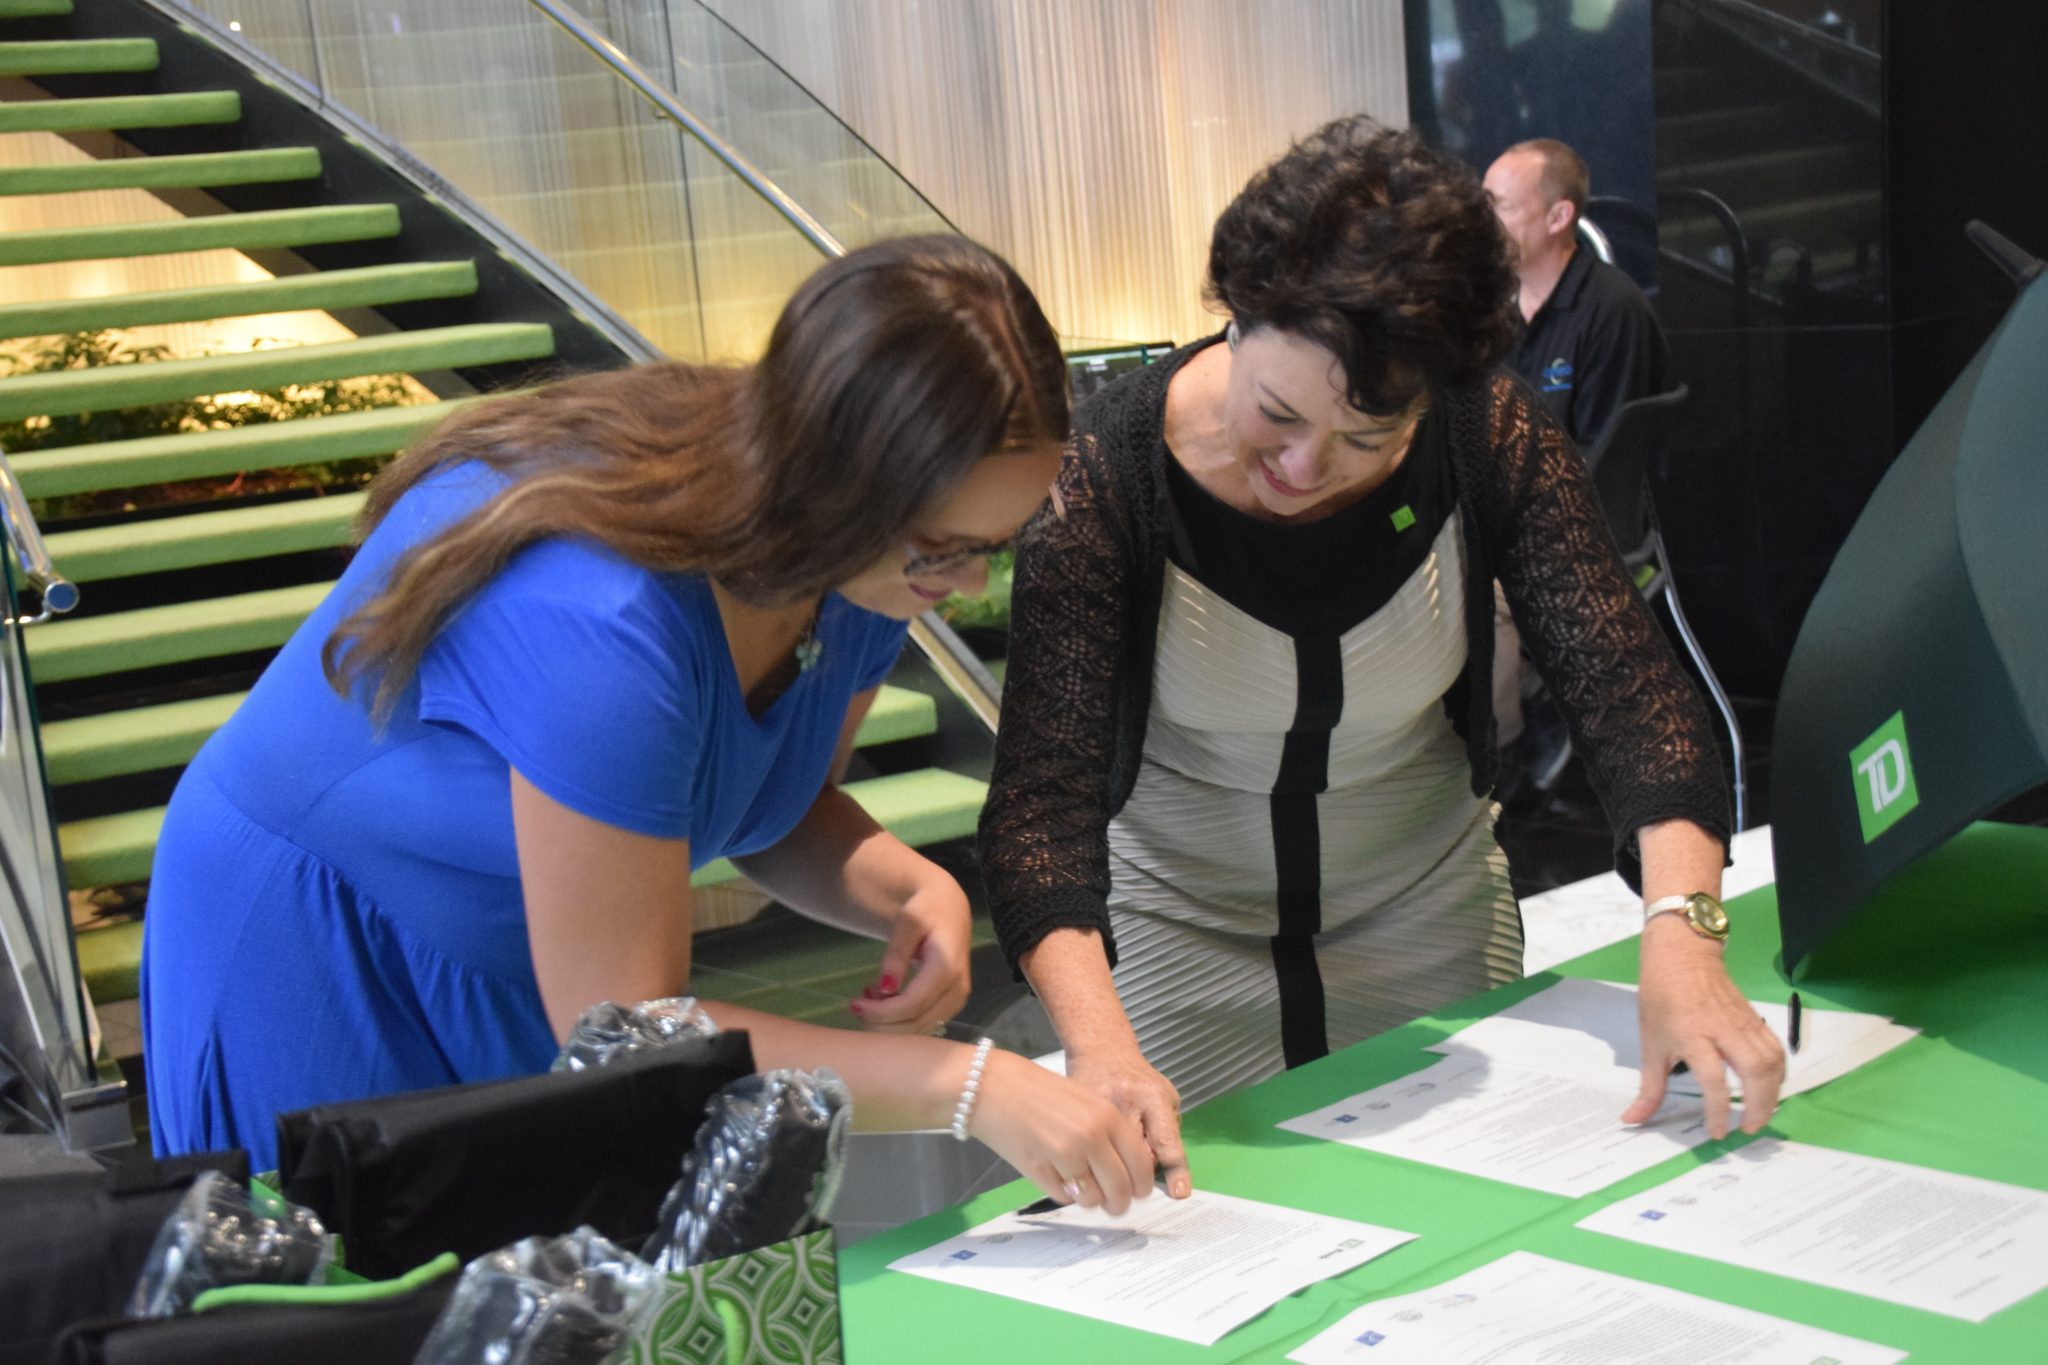 Project Search opens door to employment for adults with